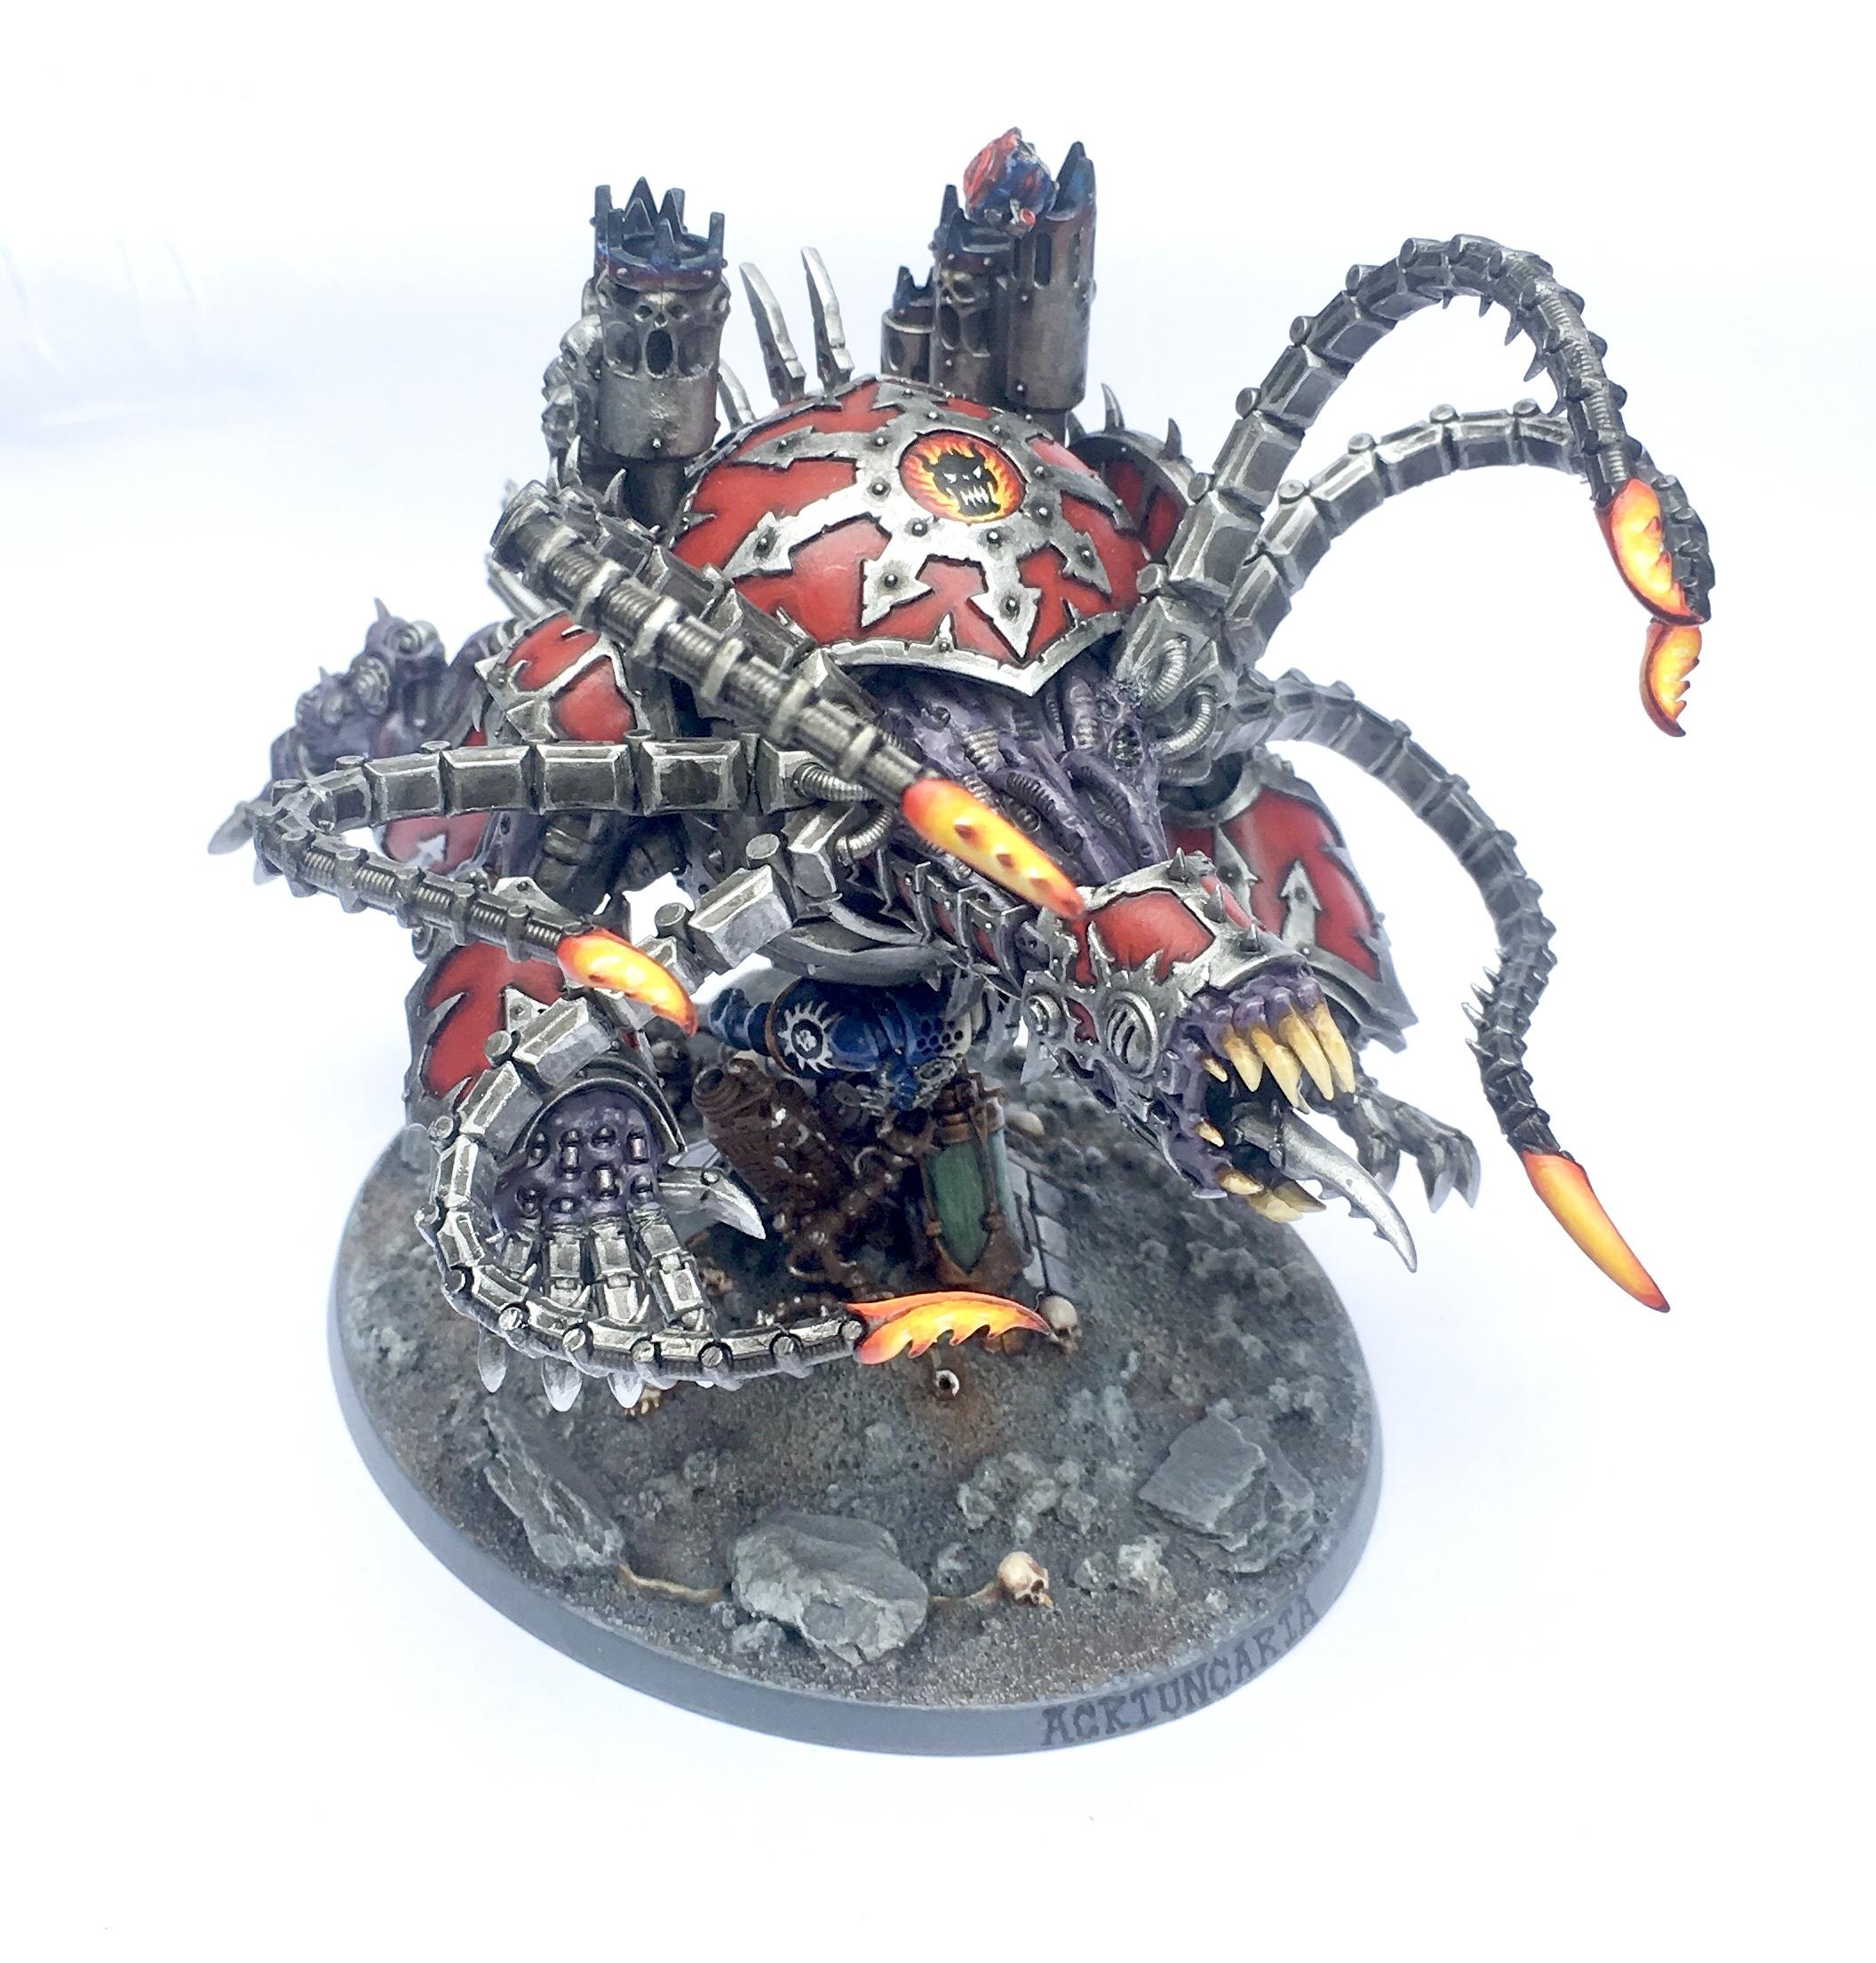 Chaos, Chaos Space Marines, Conversion, Daemon Engine, Maulerfiend, Word Bearers